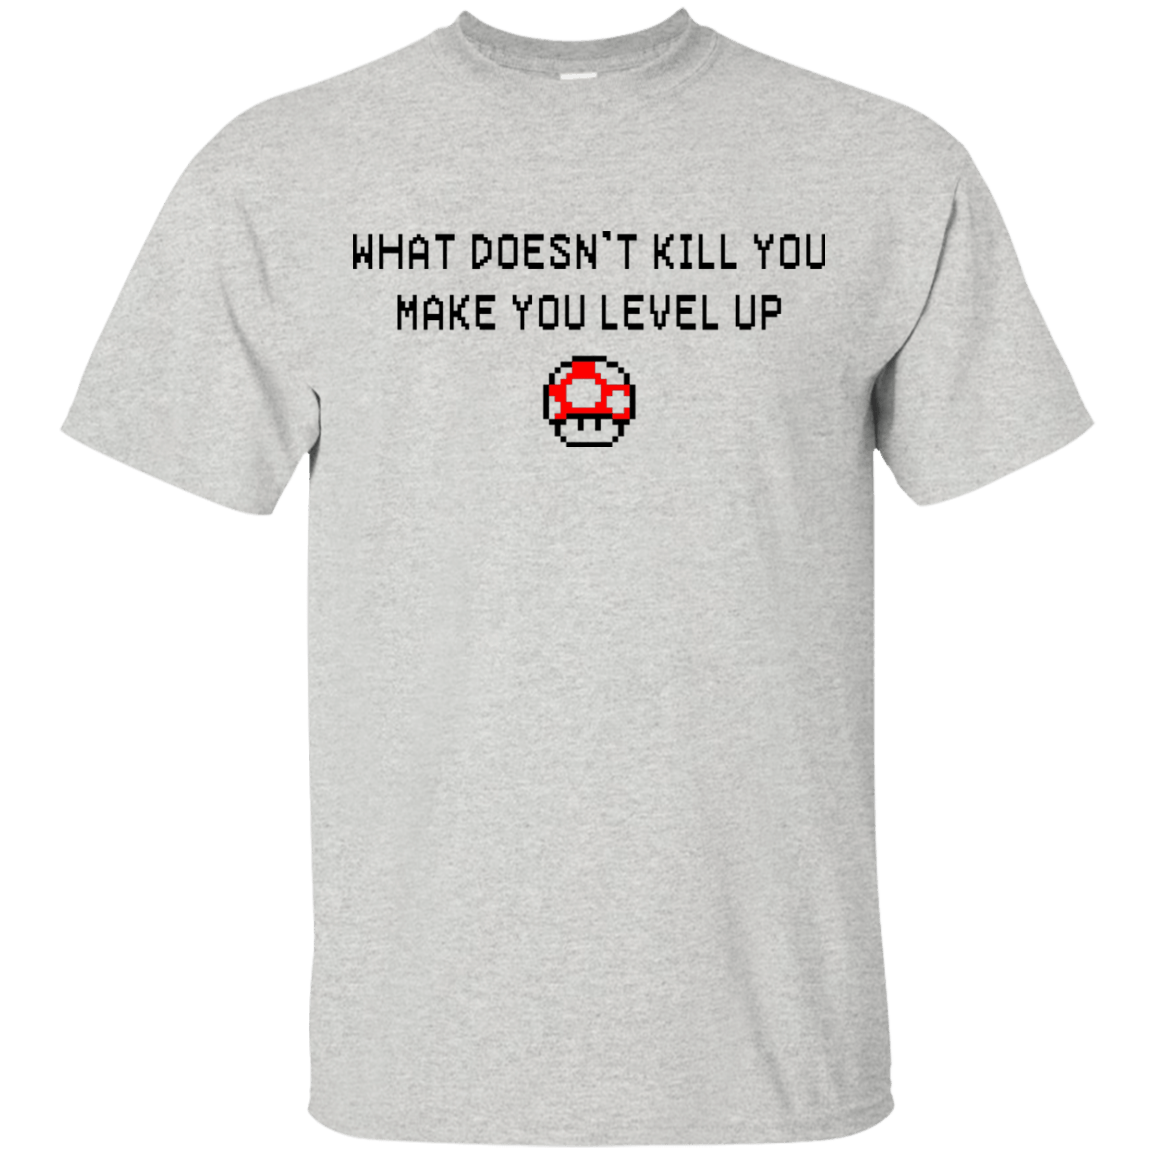 What Doesn't Kill You Make You Level Up Shirt